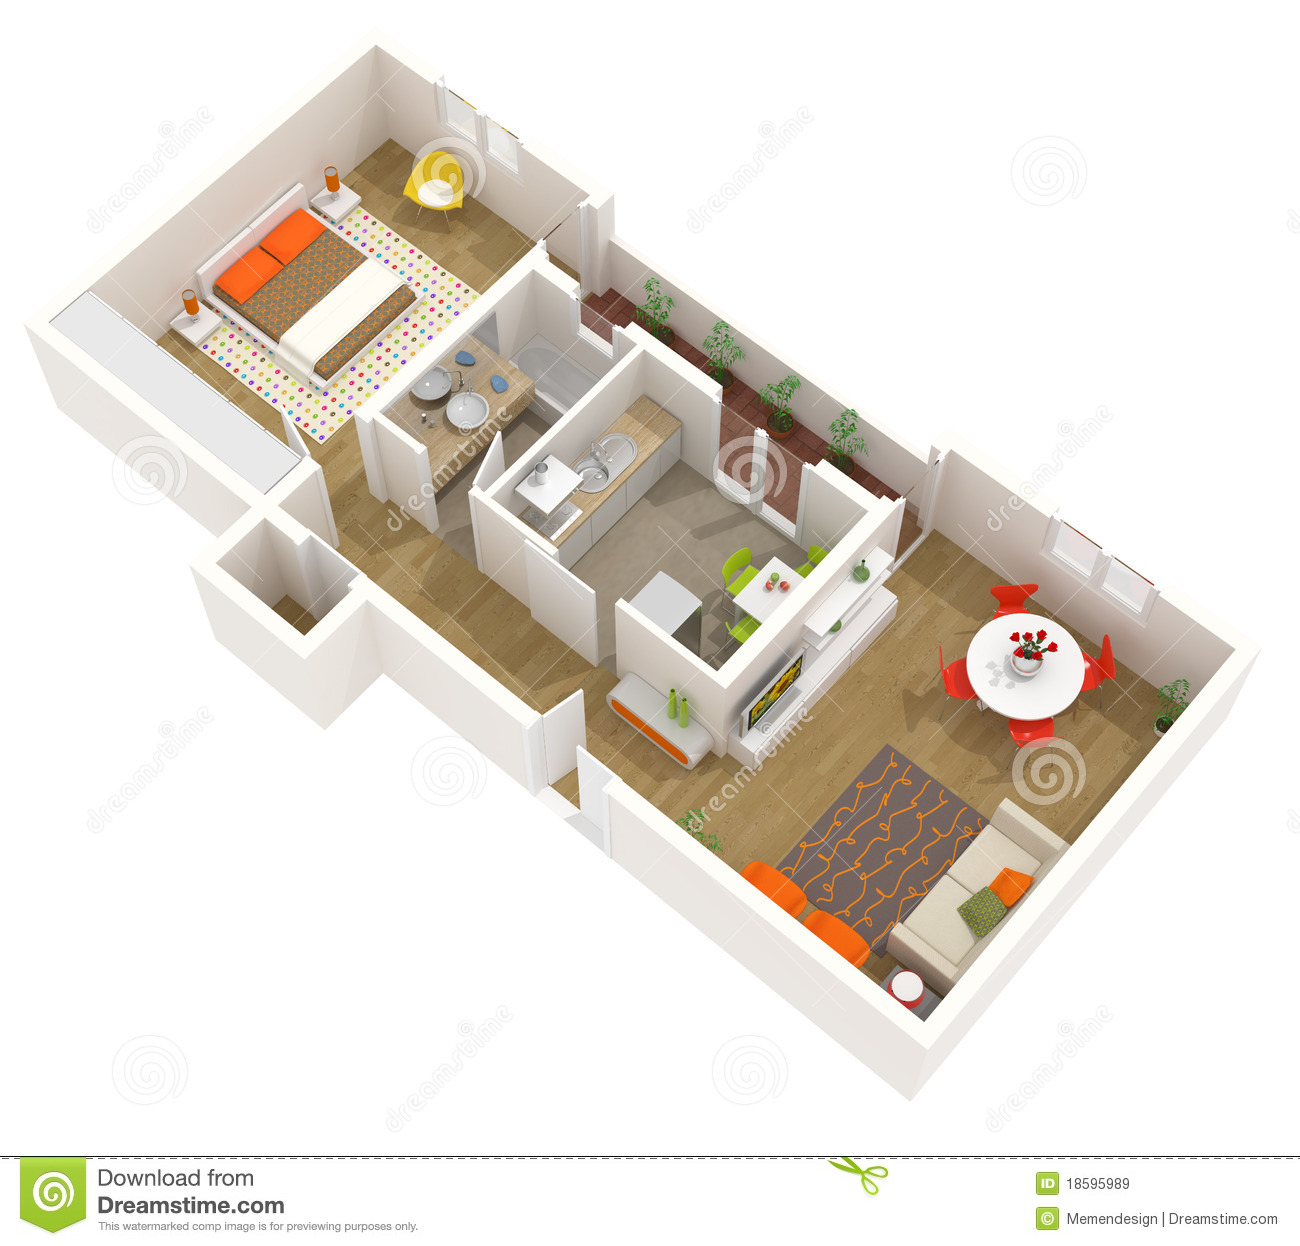 Apartment interior design 3d floor plan stock for Apartment designer program